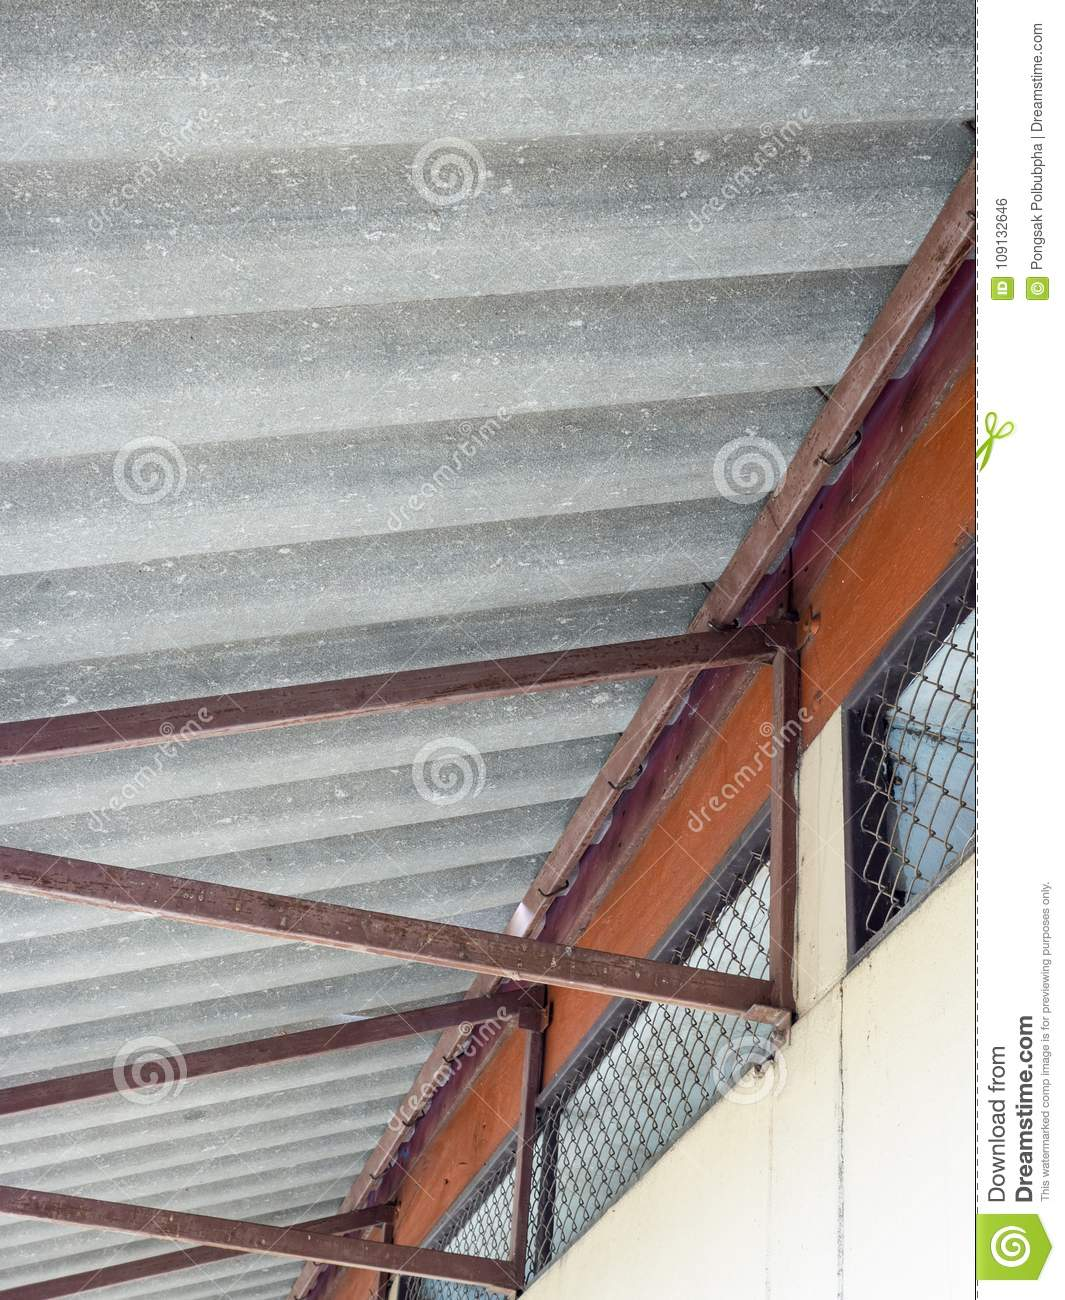 Old Metal Frame For The Fiber Cement Roof Stock Photo Image Of Grille Canteen 109132646